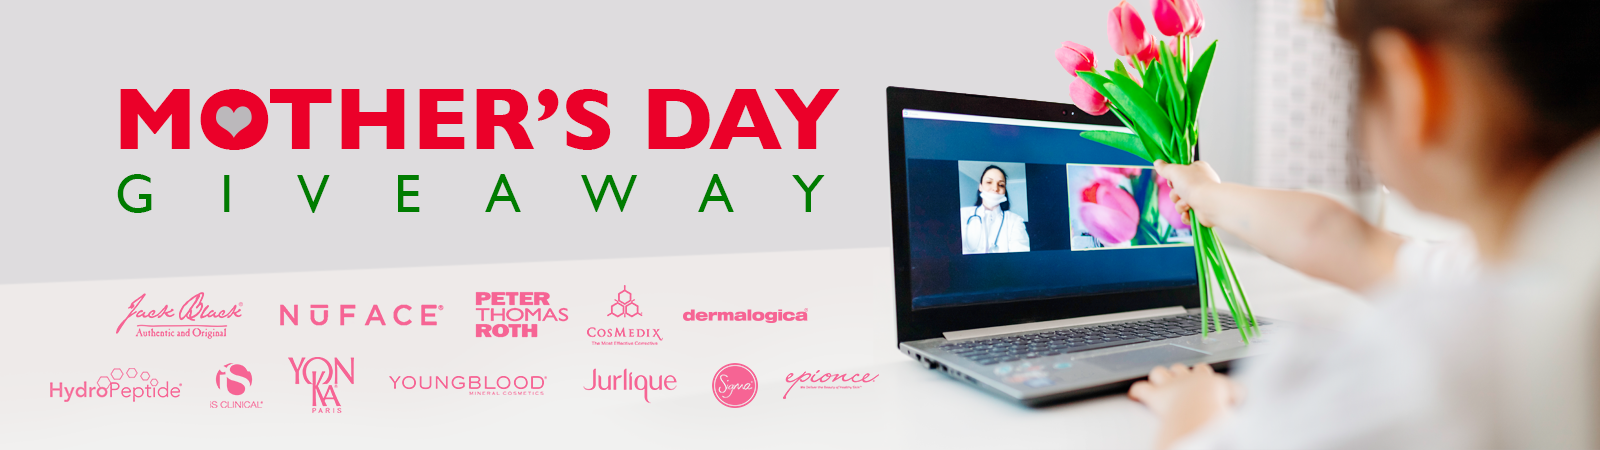 mothers-day-giveaway-copy-1-.png